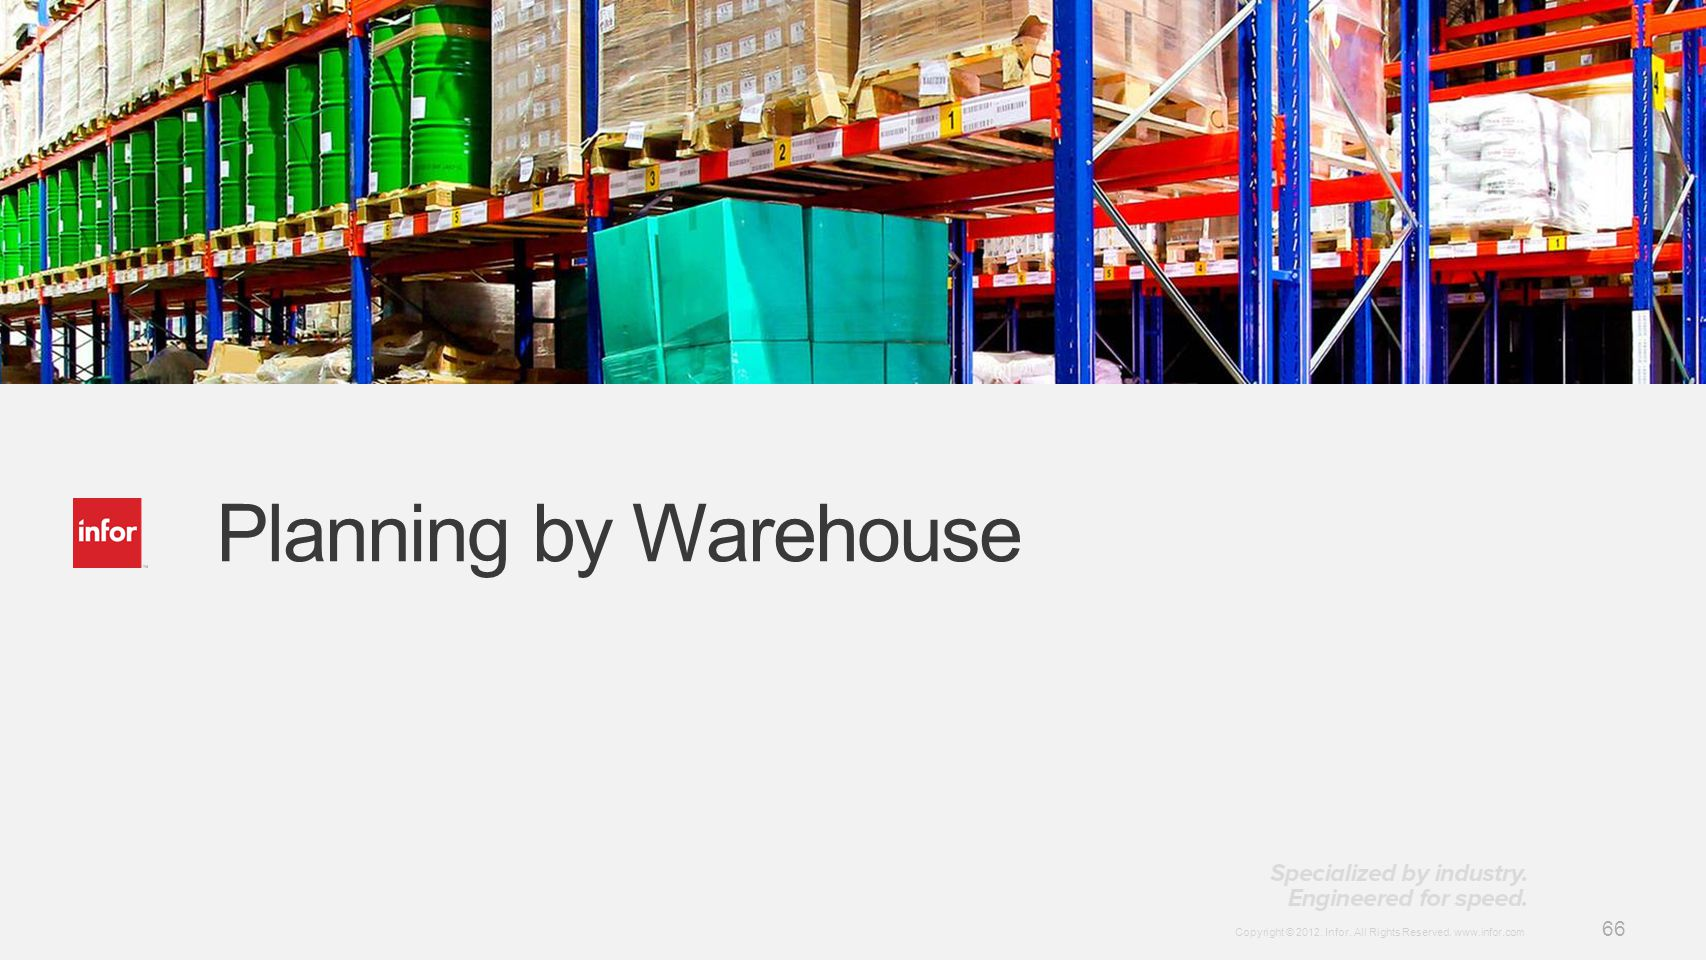 Planning by Warehouse